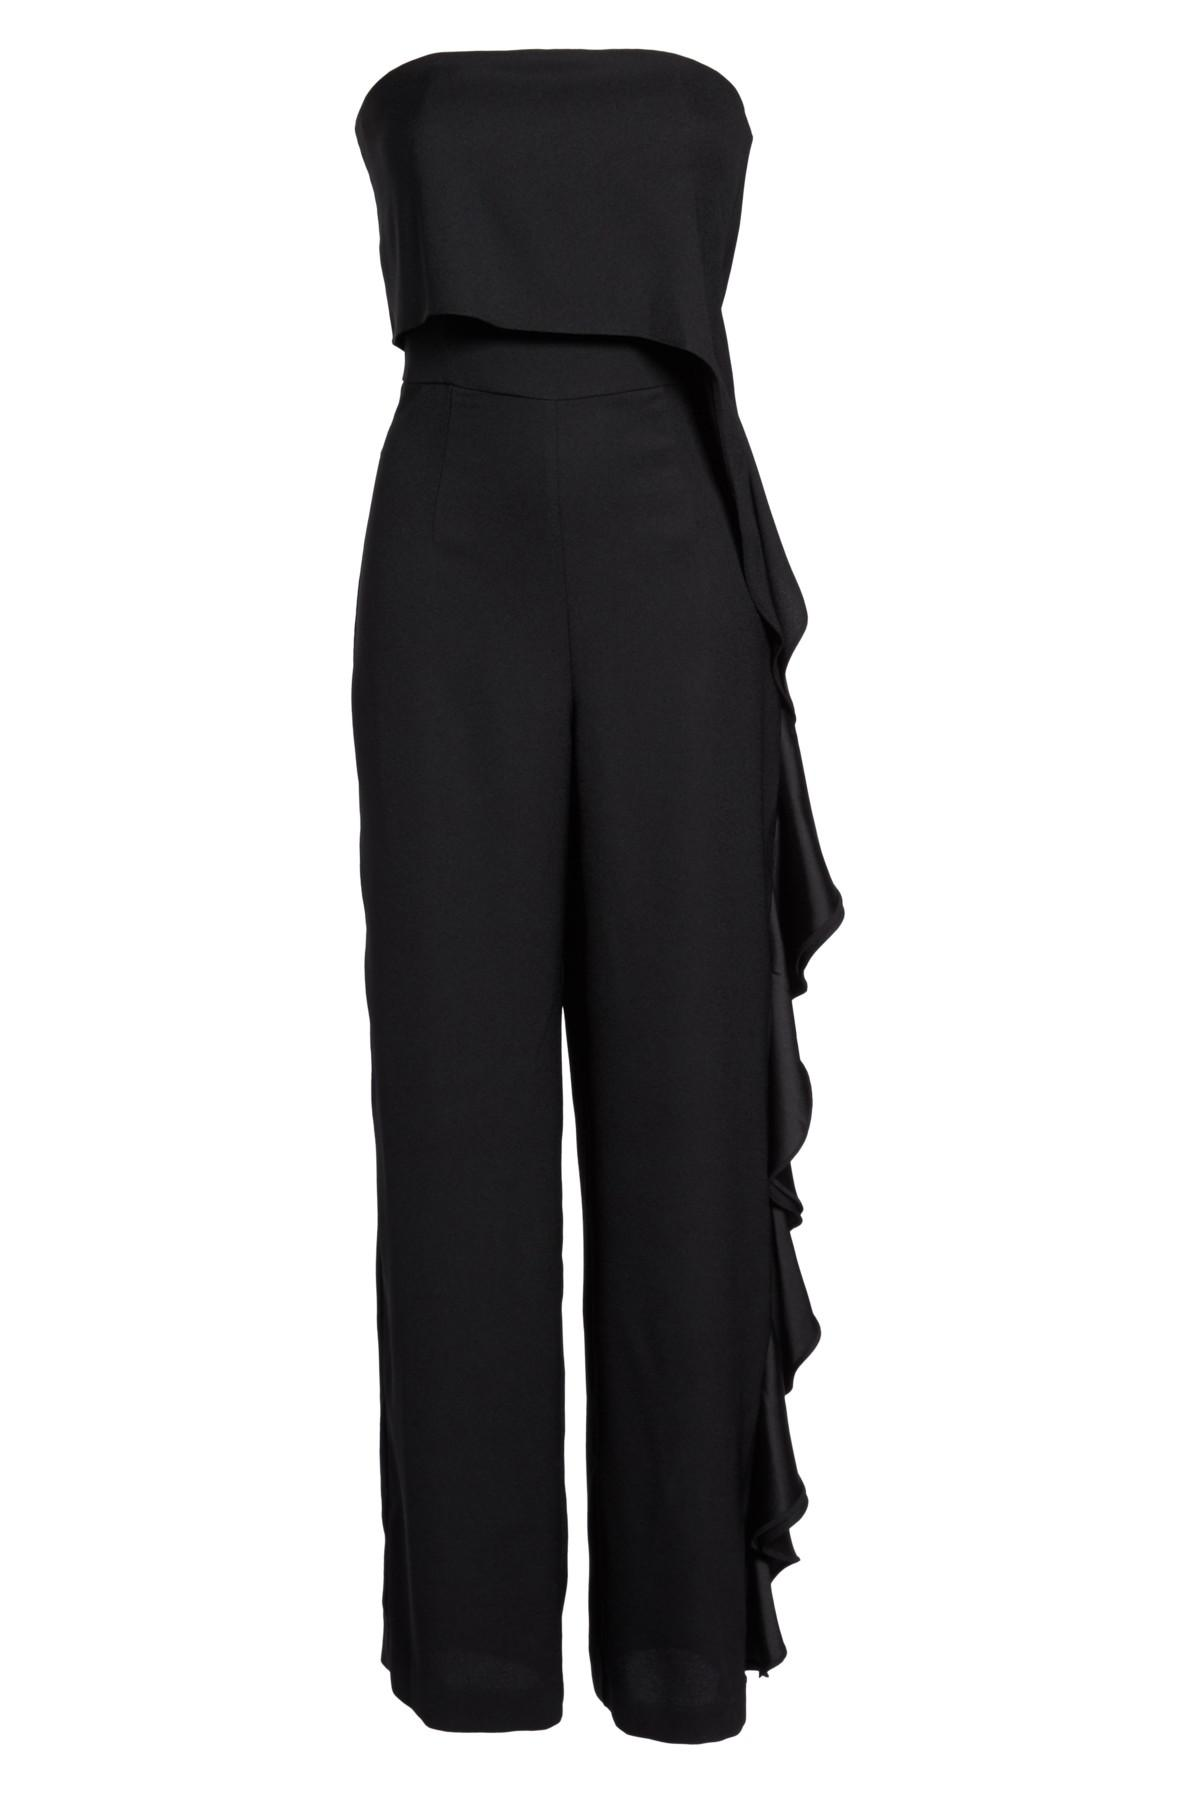 db1c13ebd82 Lyst - Eliza J Ruffle Side Strapless Jumpsuit in Black